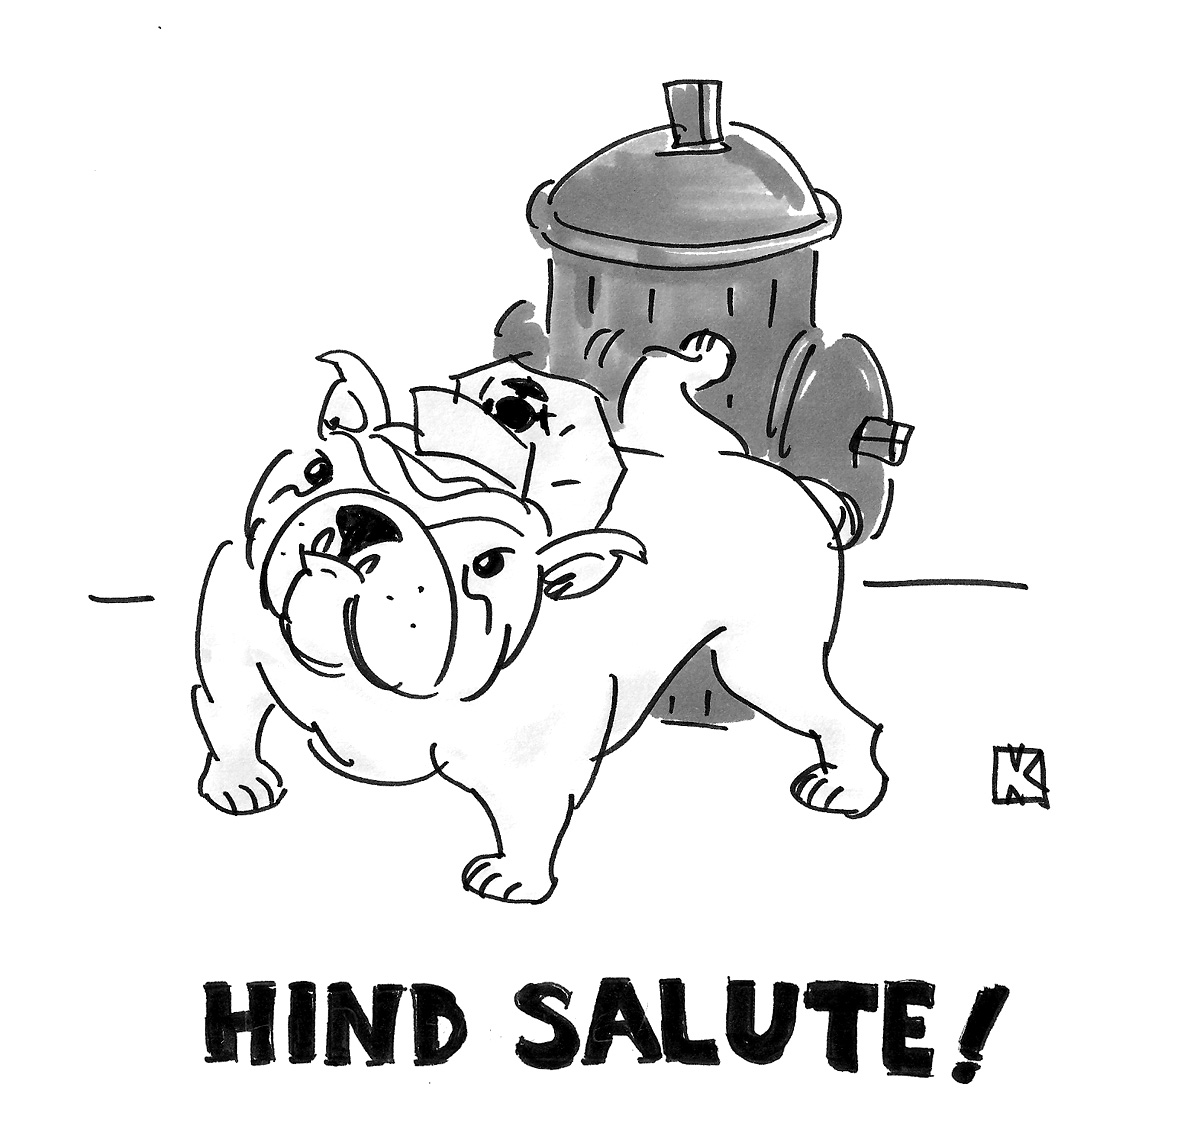 (Bulldog urinating on fire hydrant, with caption: 'Hind salute!')